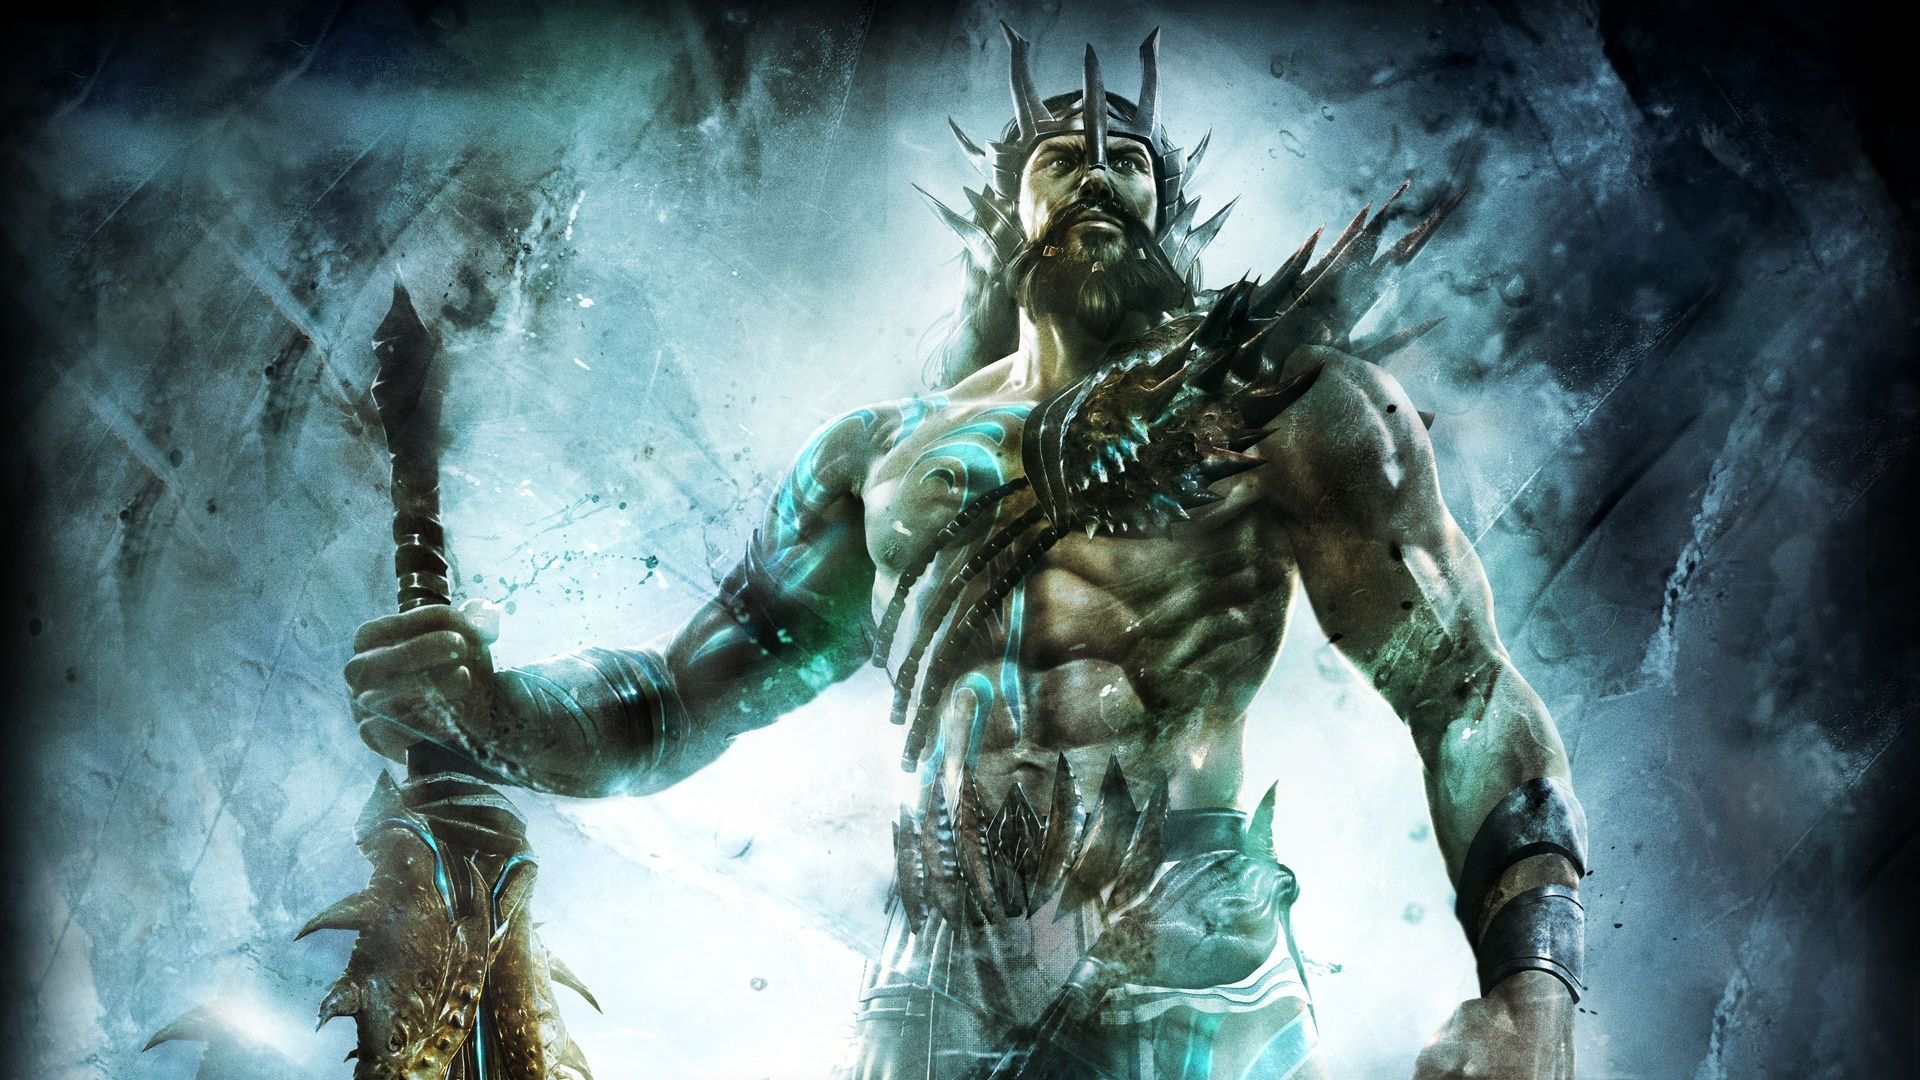 Poseidon in God of War Ascension